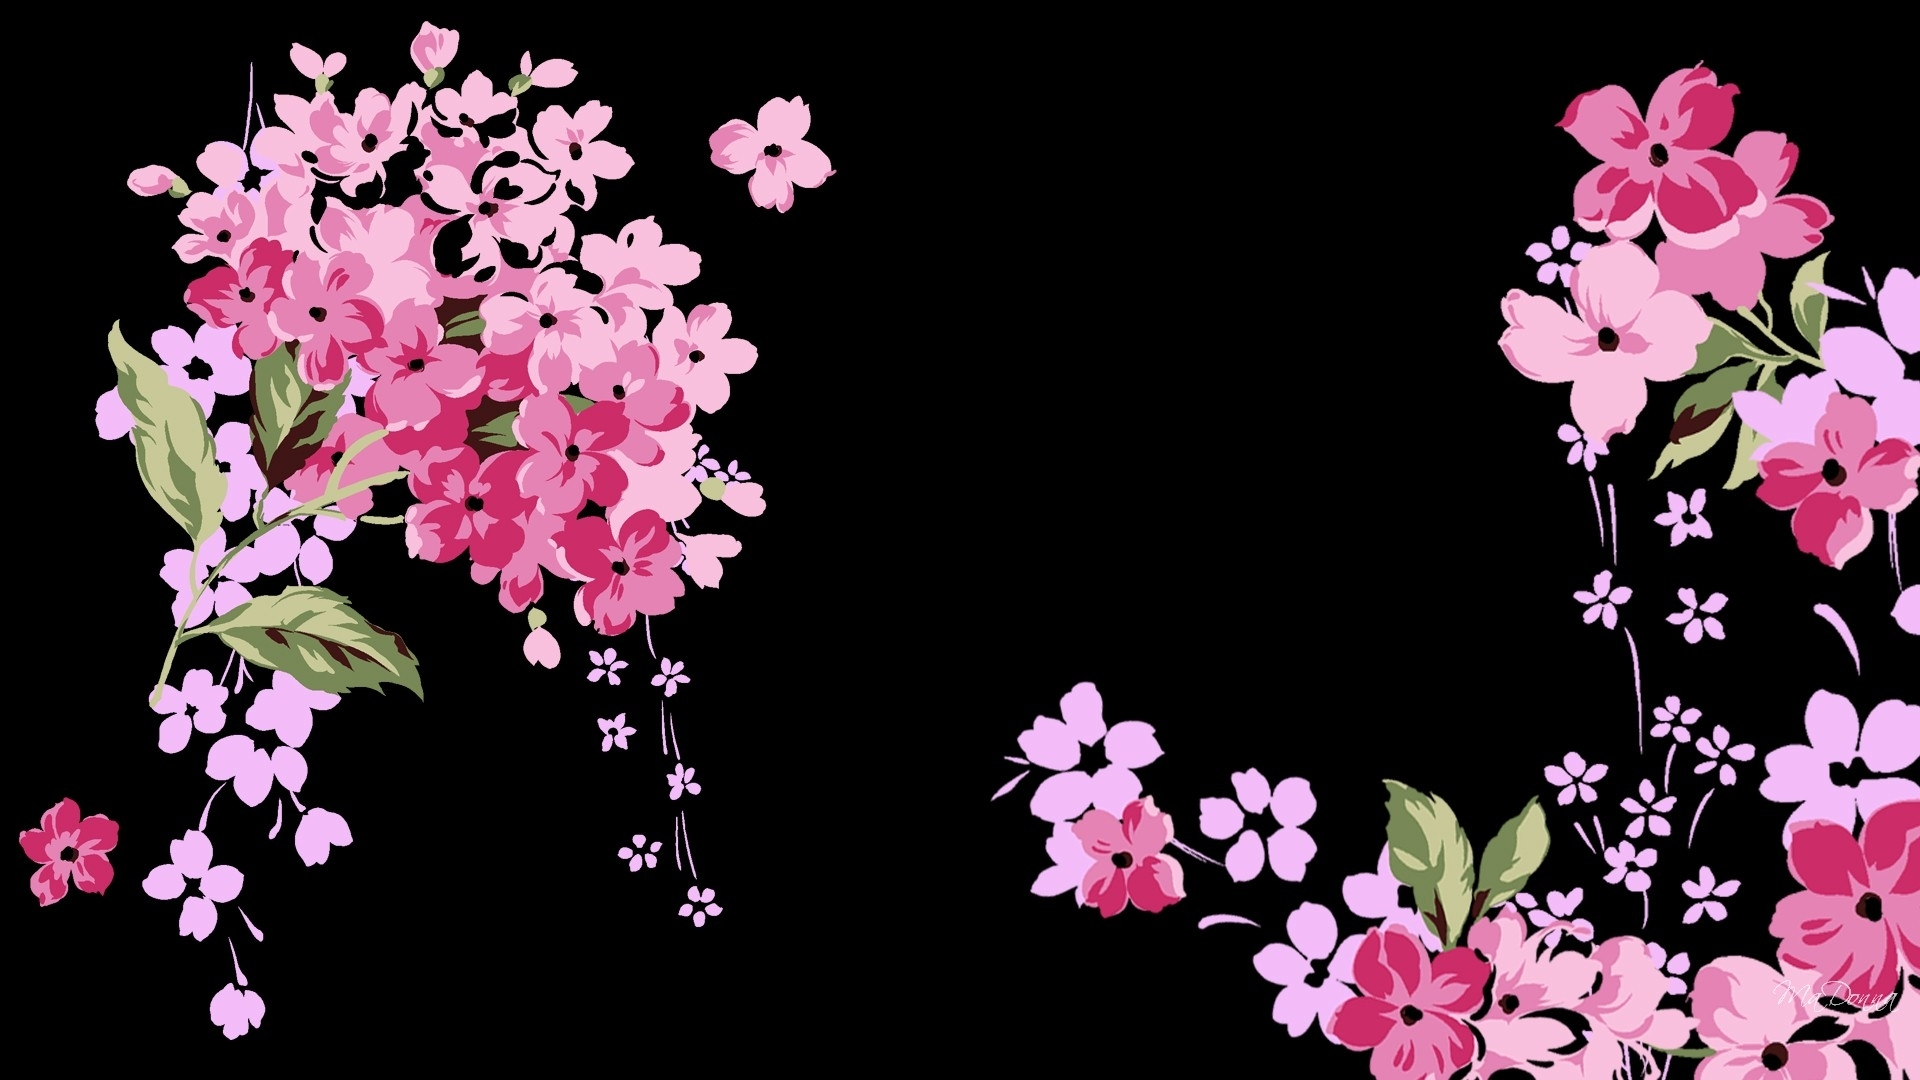 pink and black flower wallpaper - wallpaper dekstop